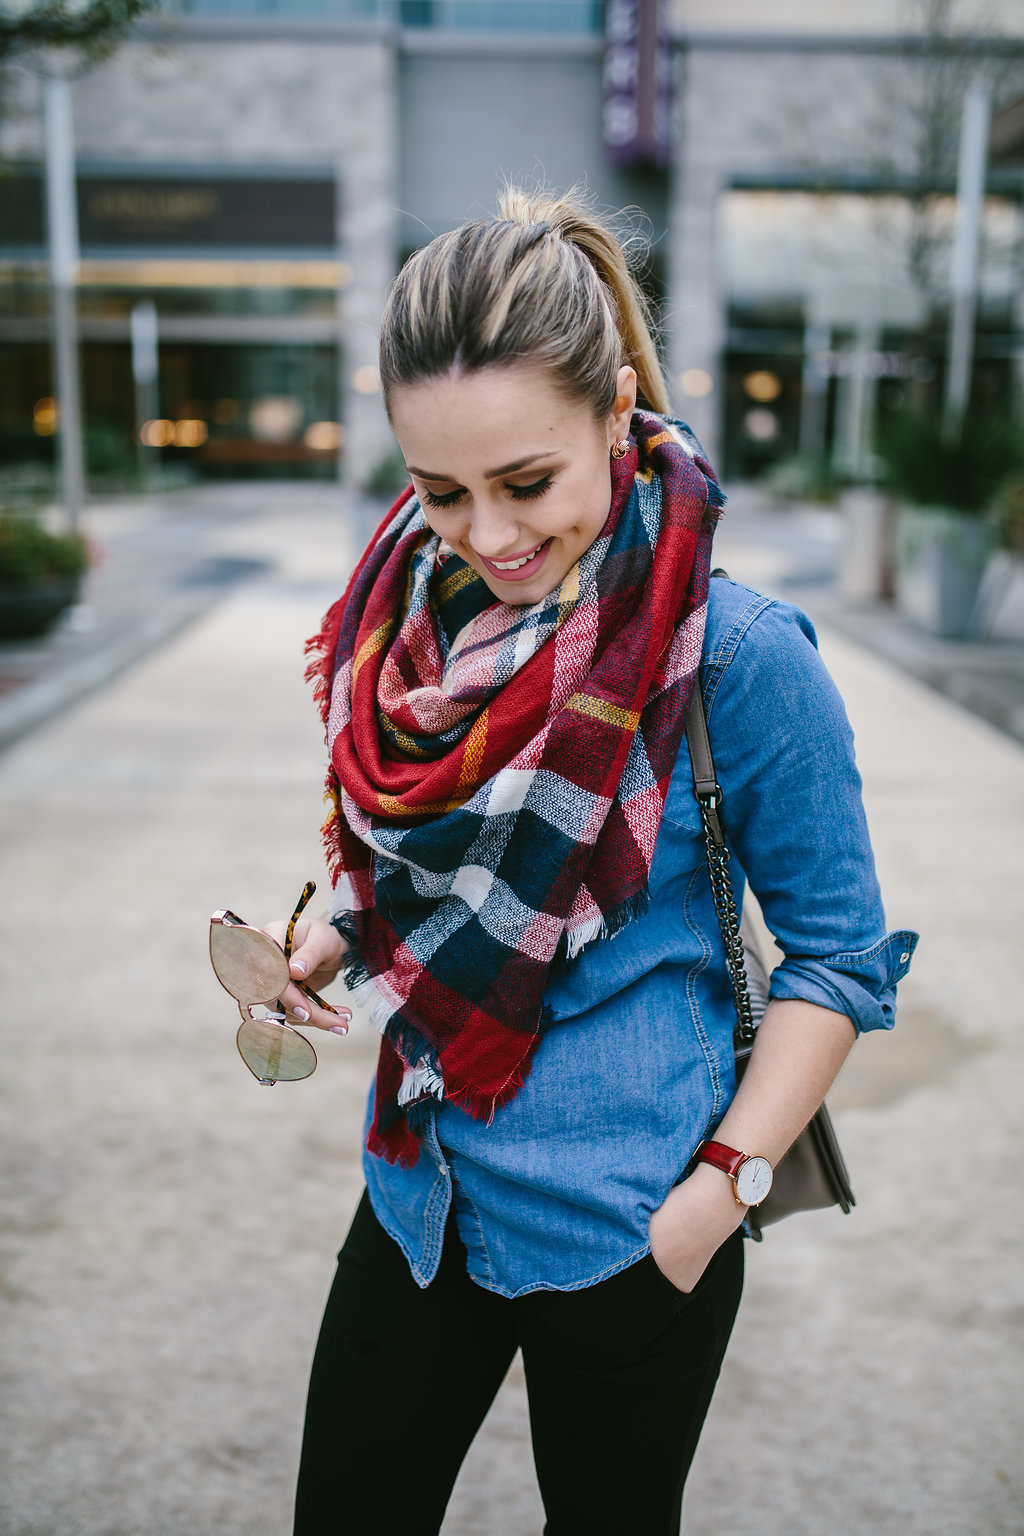 Plaid Scarf | Casual outfit | Maternity outfit | Maternity casual outfit | Uptown with Elly Brown